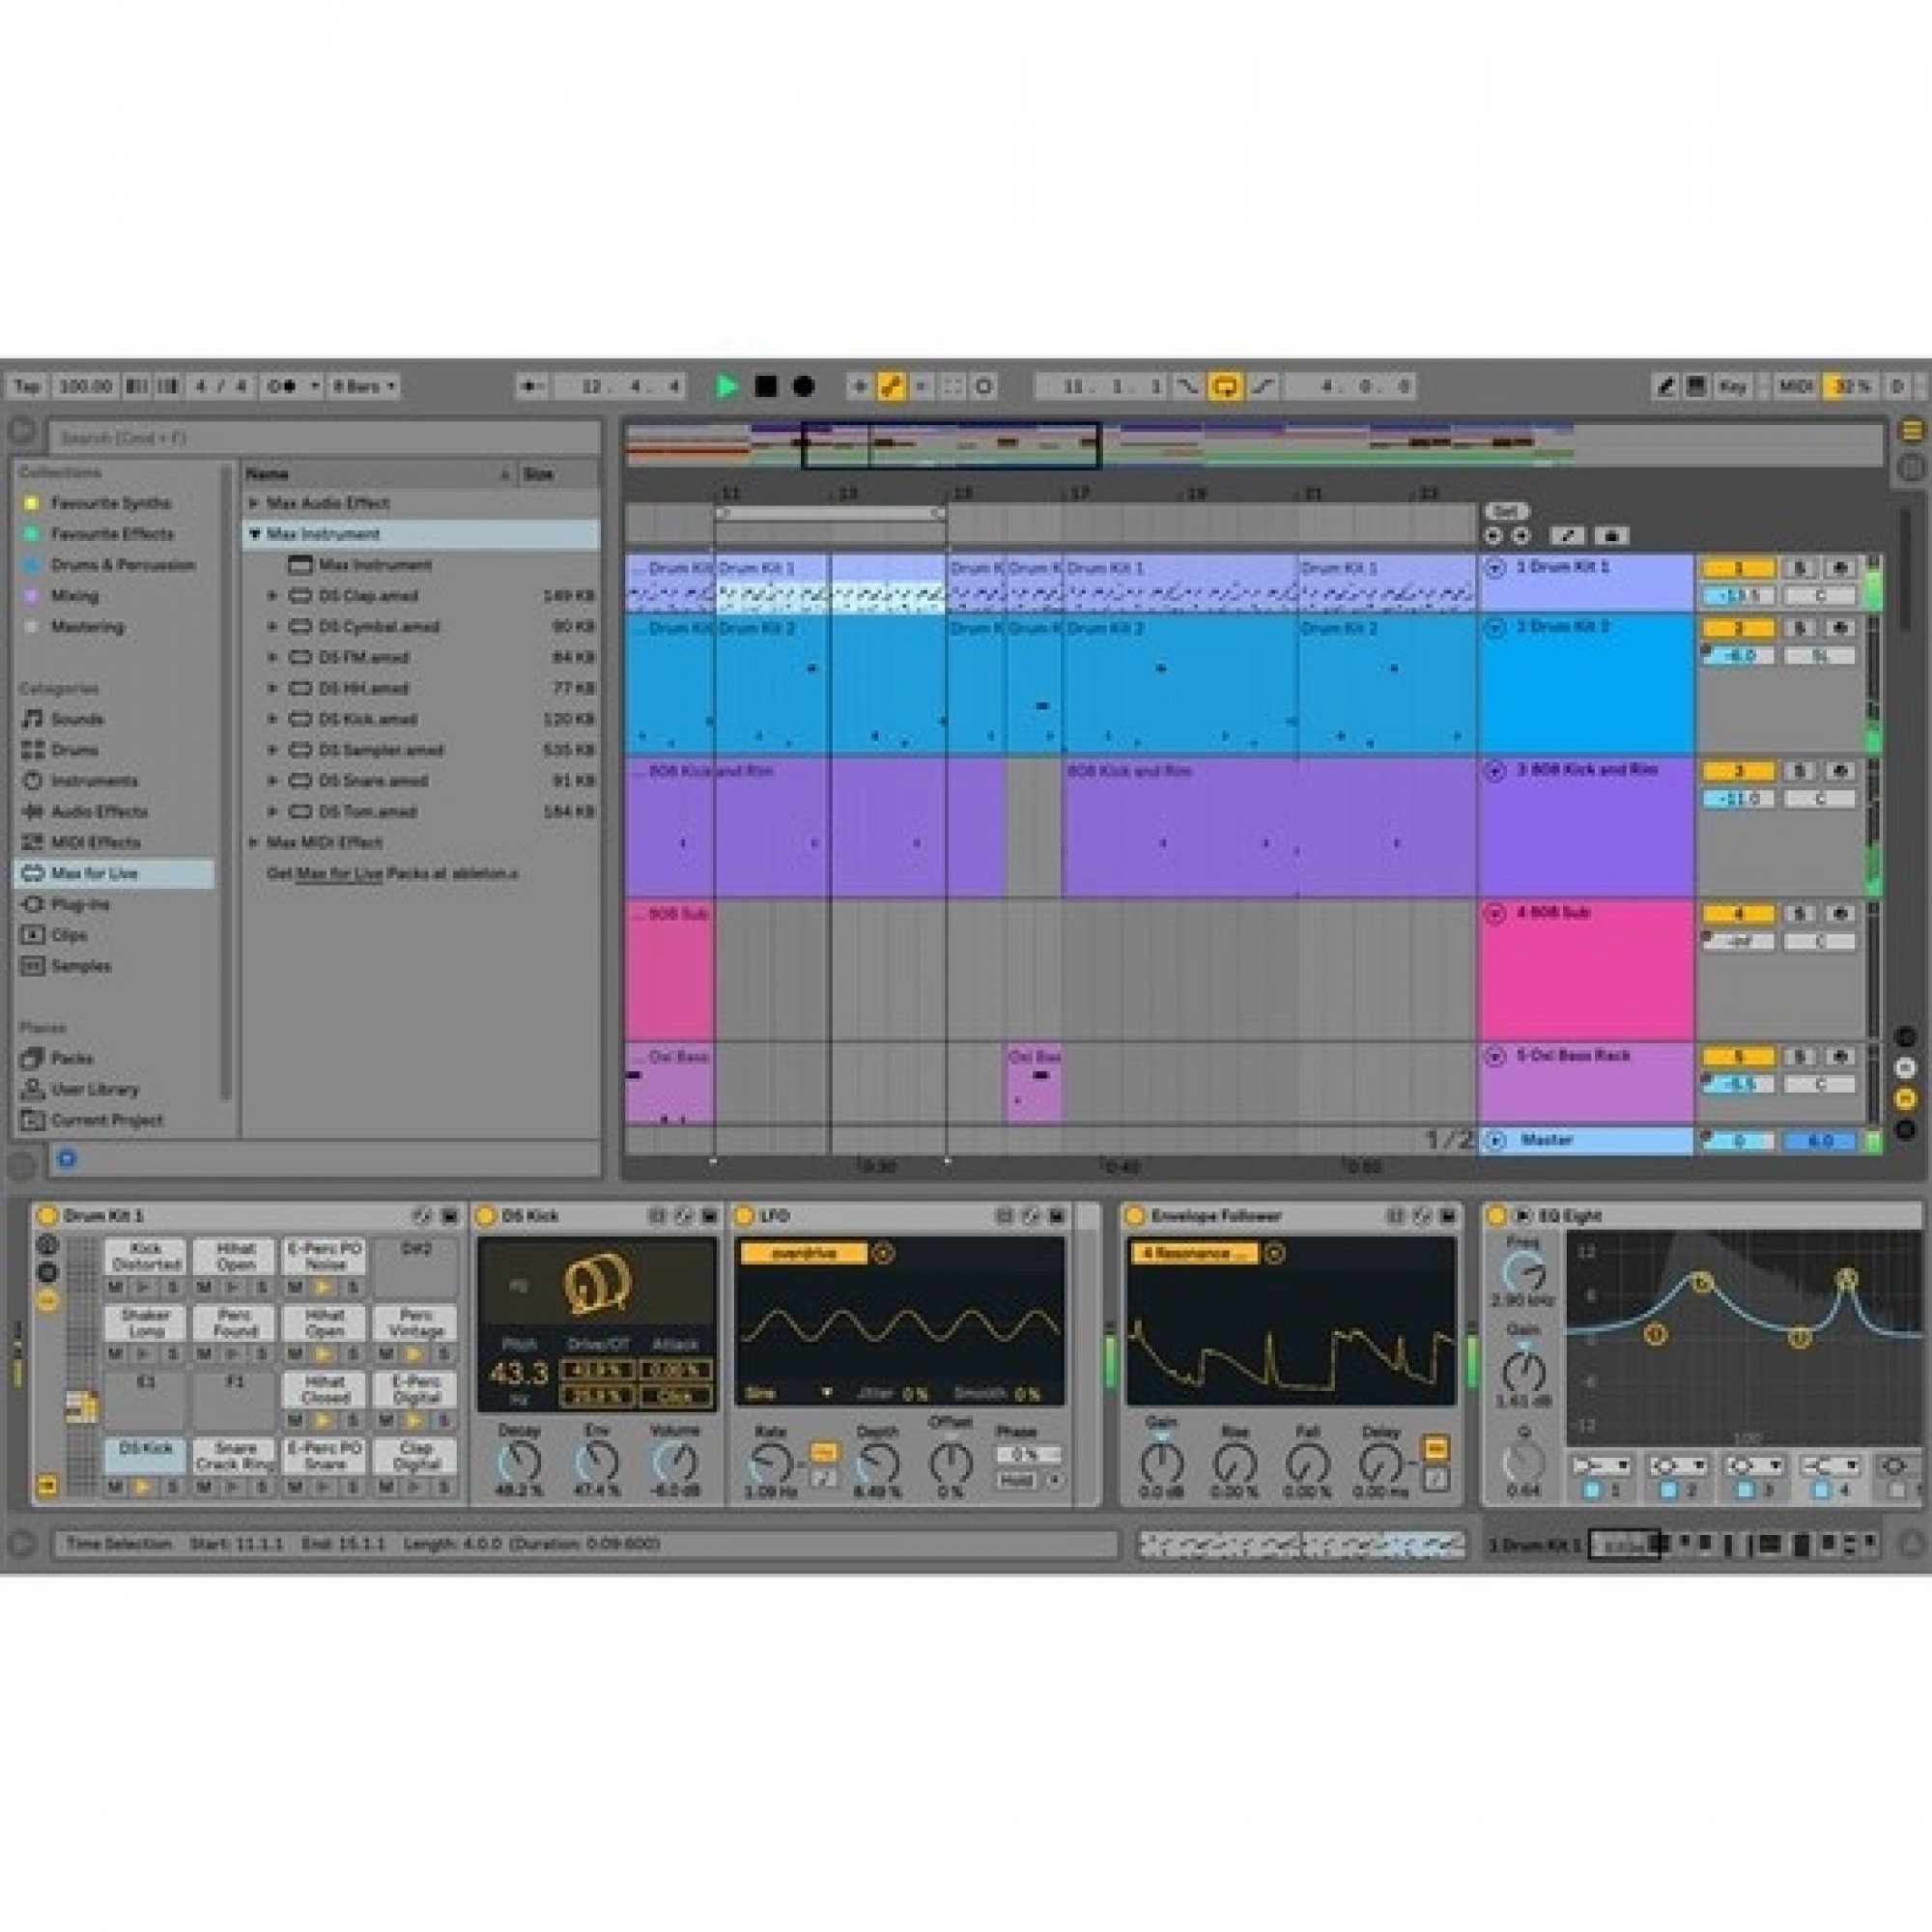 ableton ableton live 10 intro serial australia 39 s 1 music store zip accepted. Black Bedroom Furniture Sets. Home Design Ideas